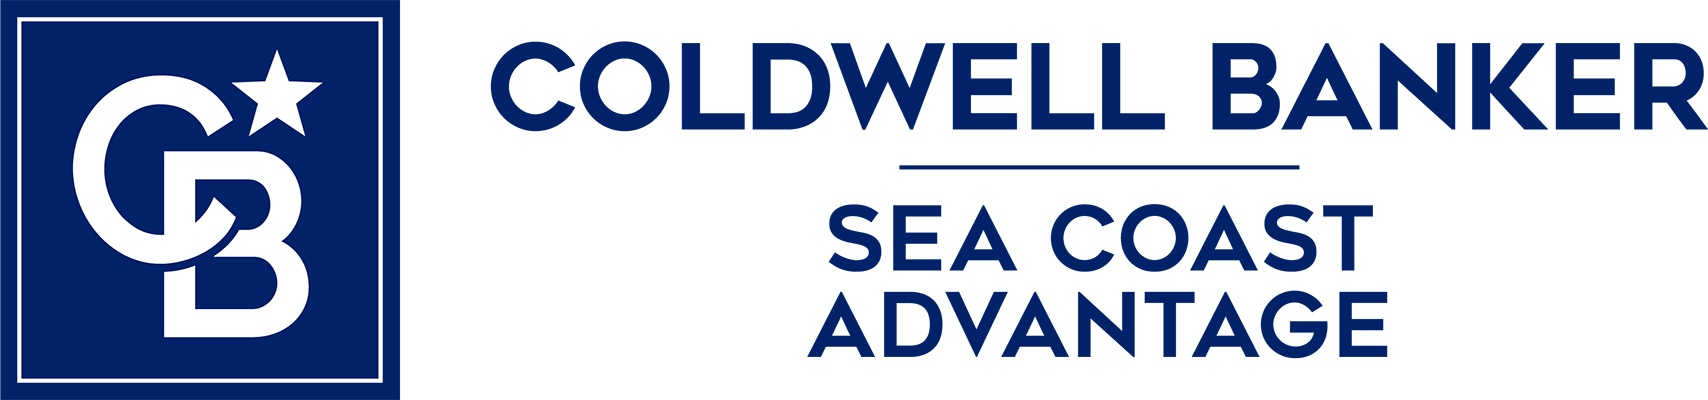 Robert Perdue - Coldwell Banker Sea Coast Advantage Realty Logo